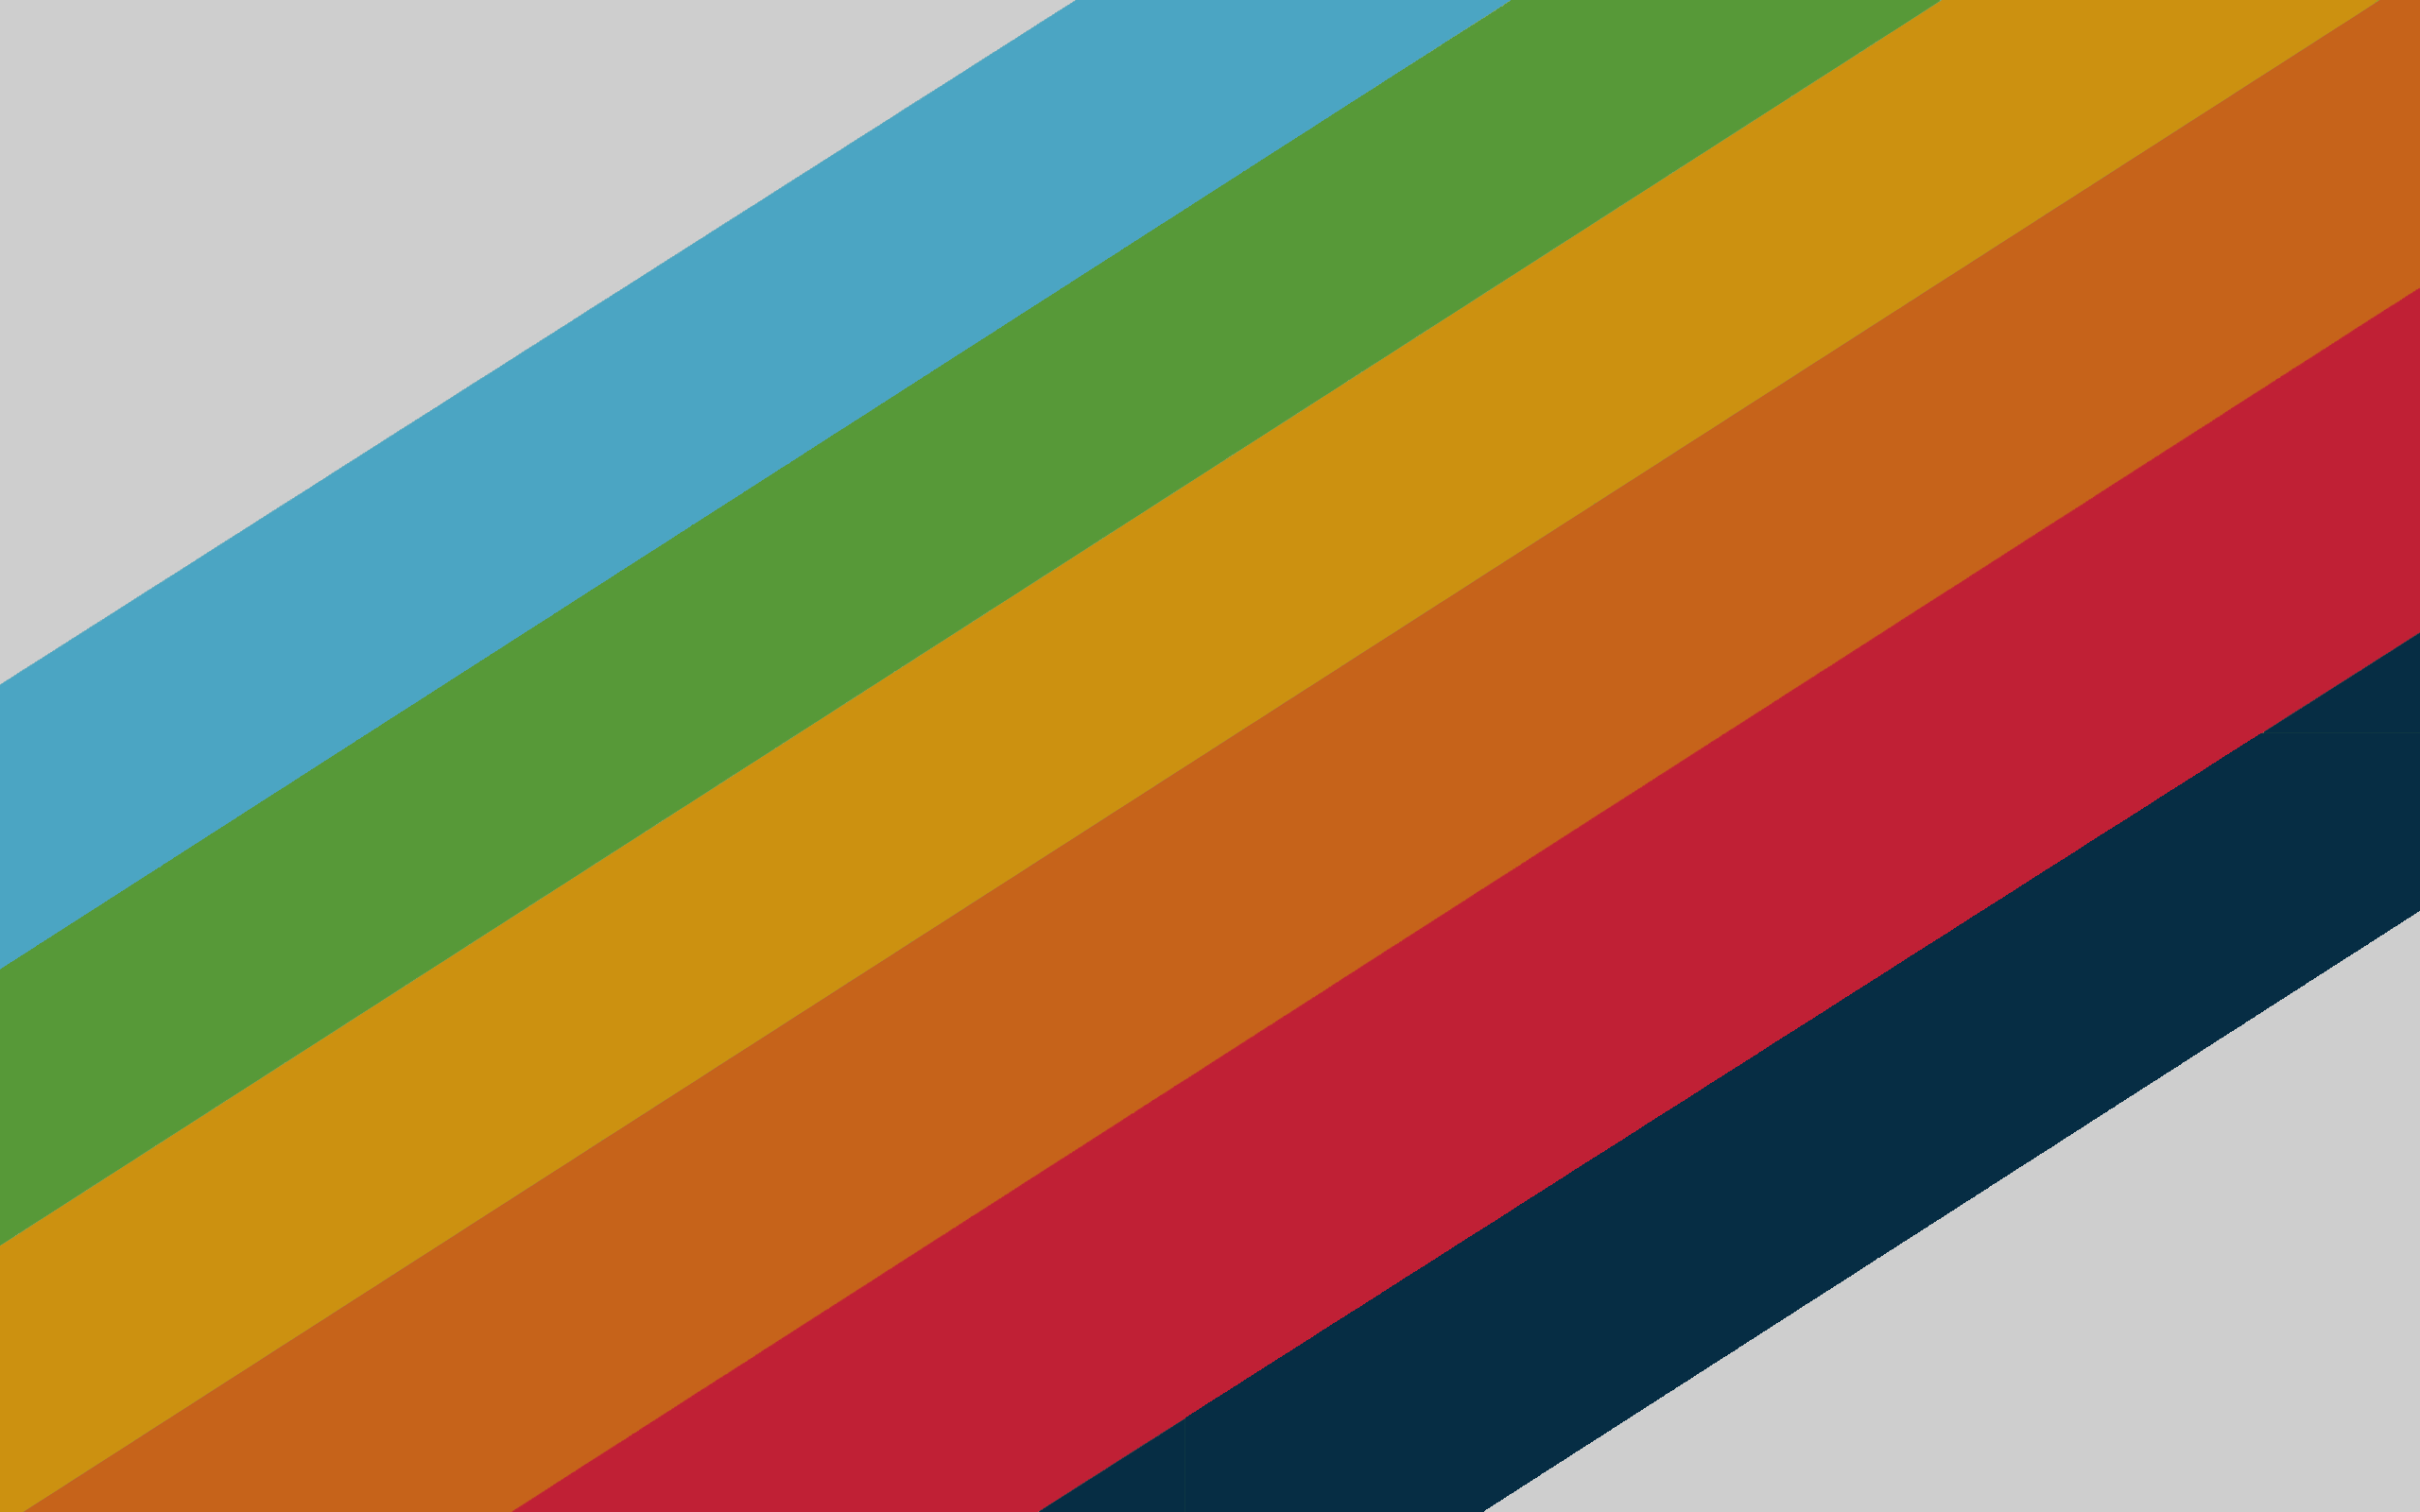 A comprehensive directory of Pittsburgh & Western Pennsylvania LGBTQ resources, organizations, social clubs and more.